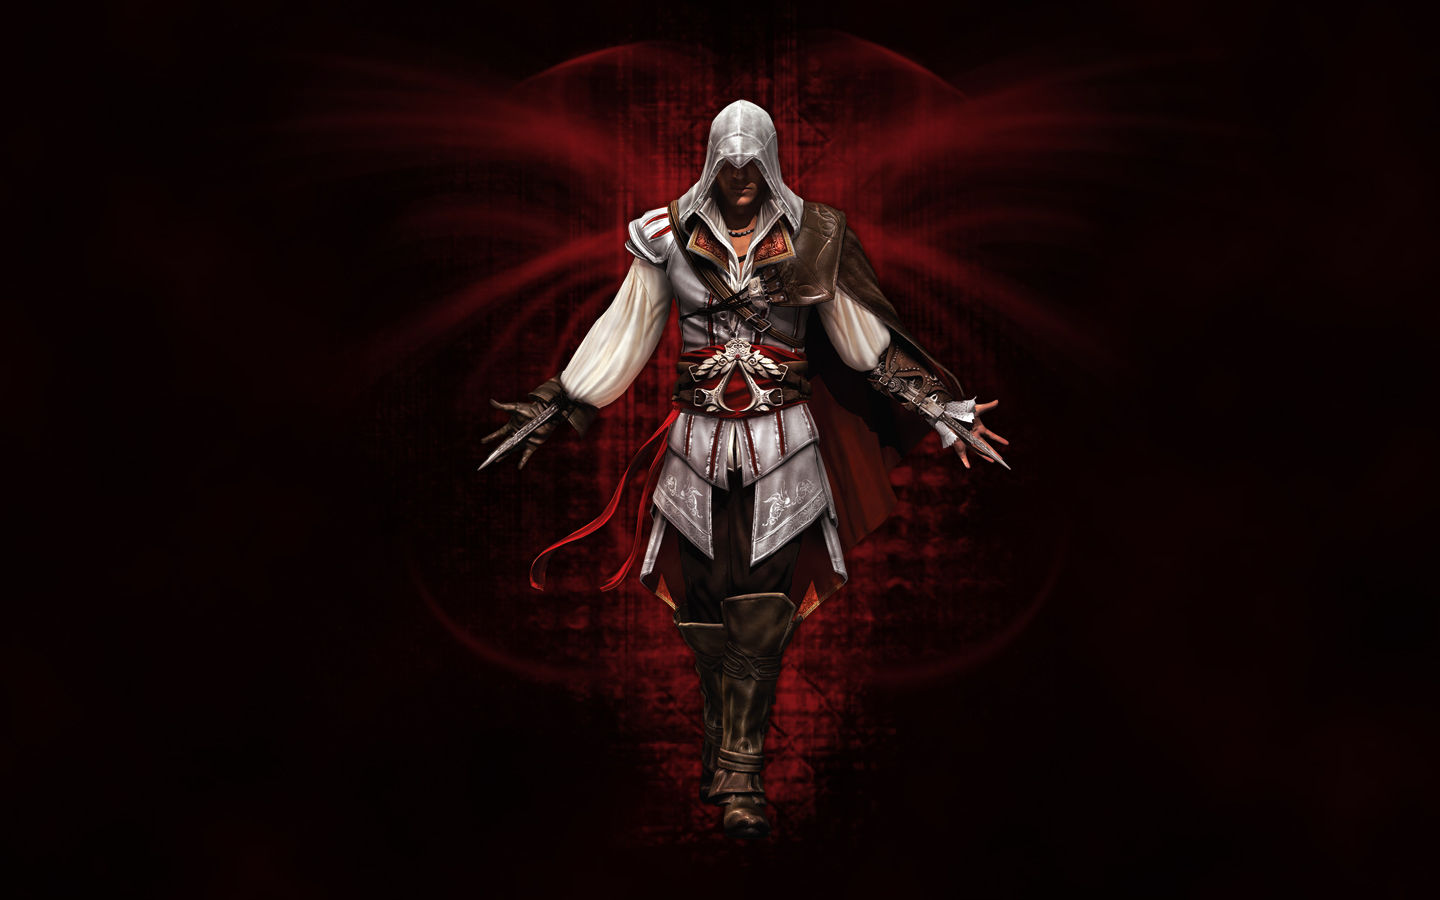 Assain Creed Video Game Wallpaper 021